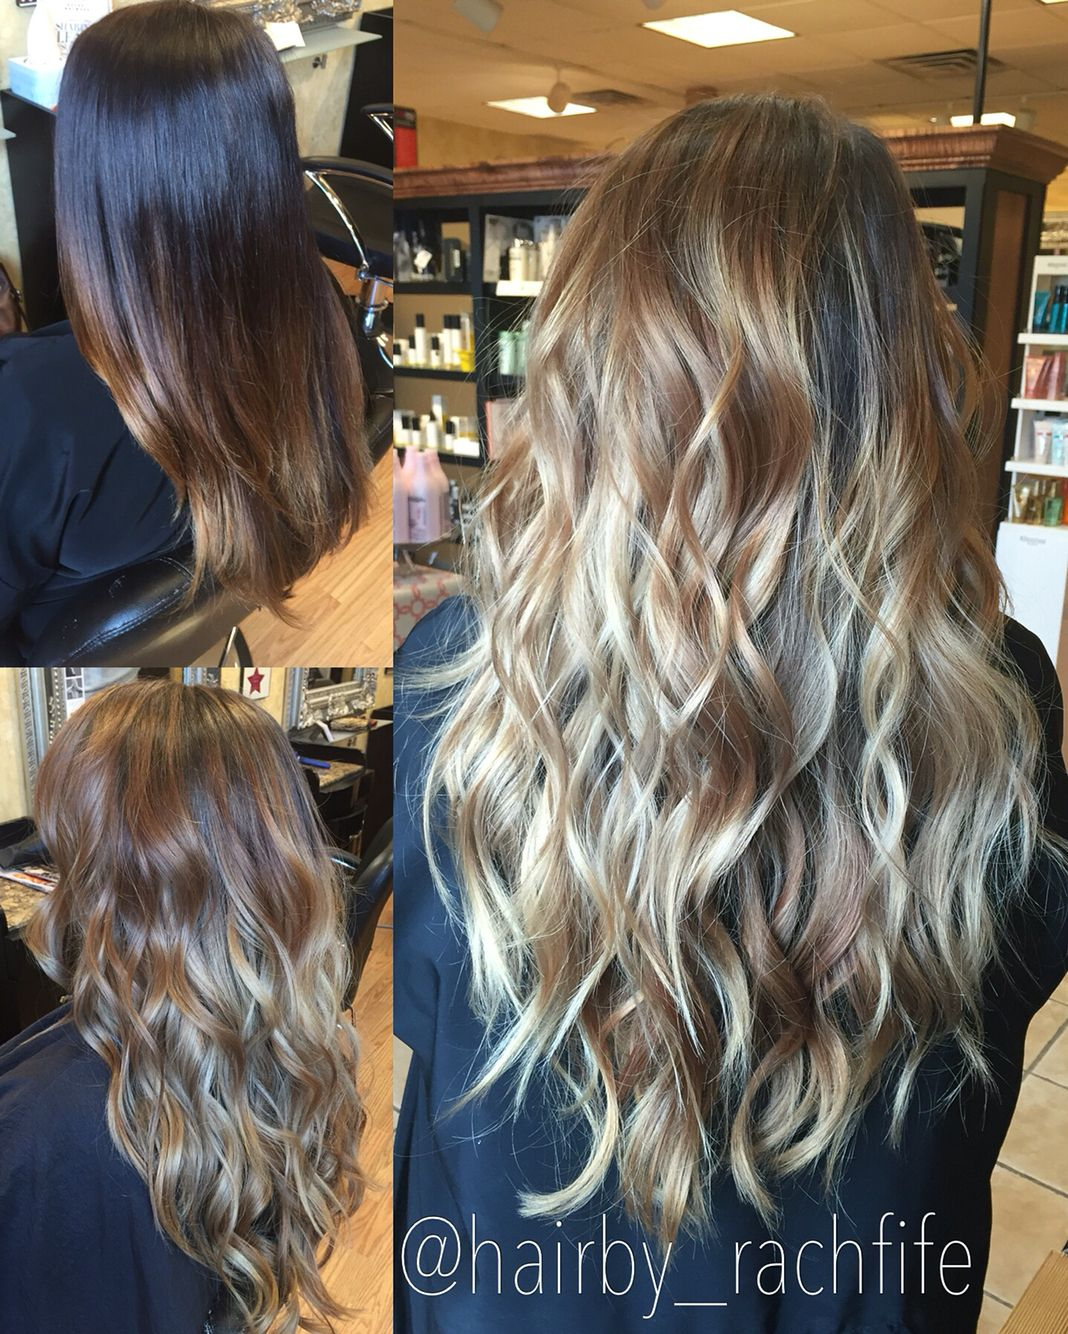 The Process Of Going Lighter Full Balayage Highlight Hair